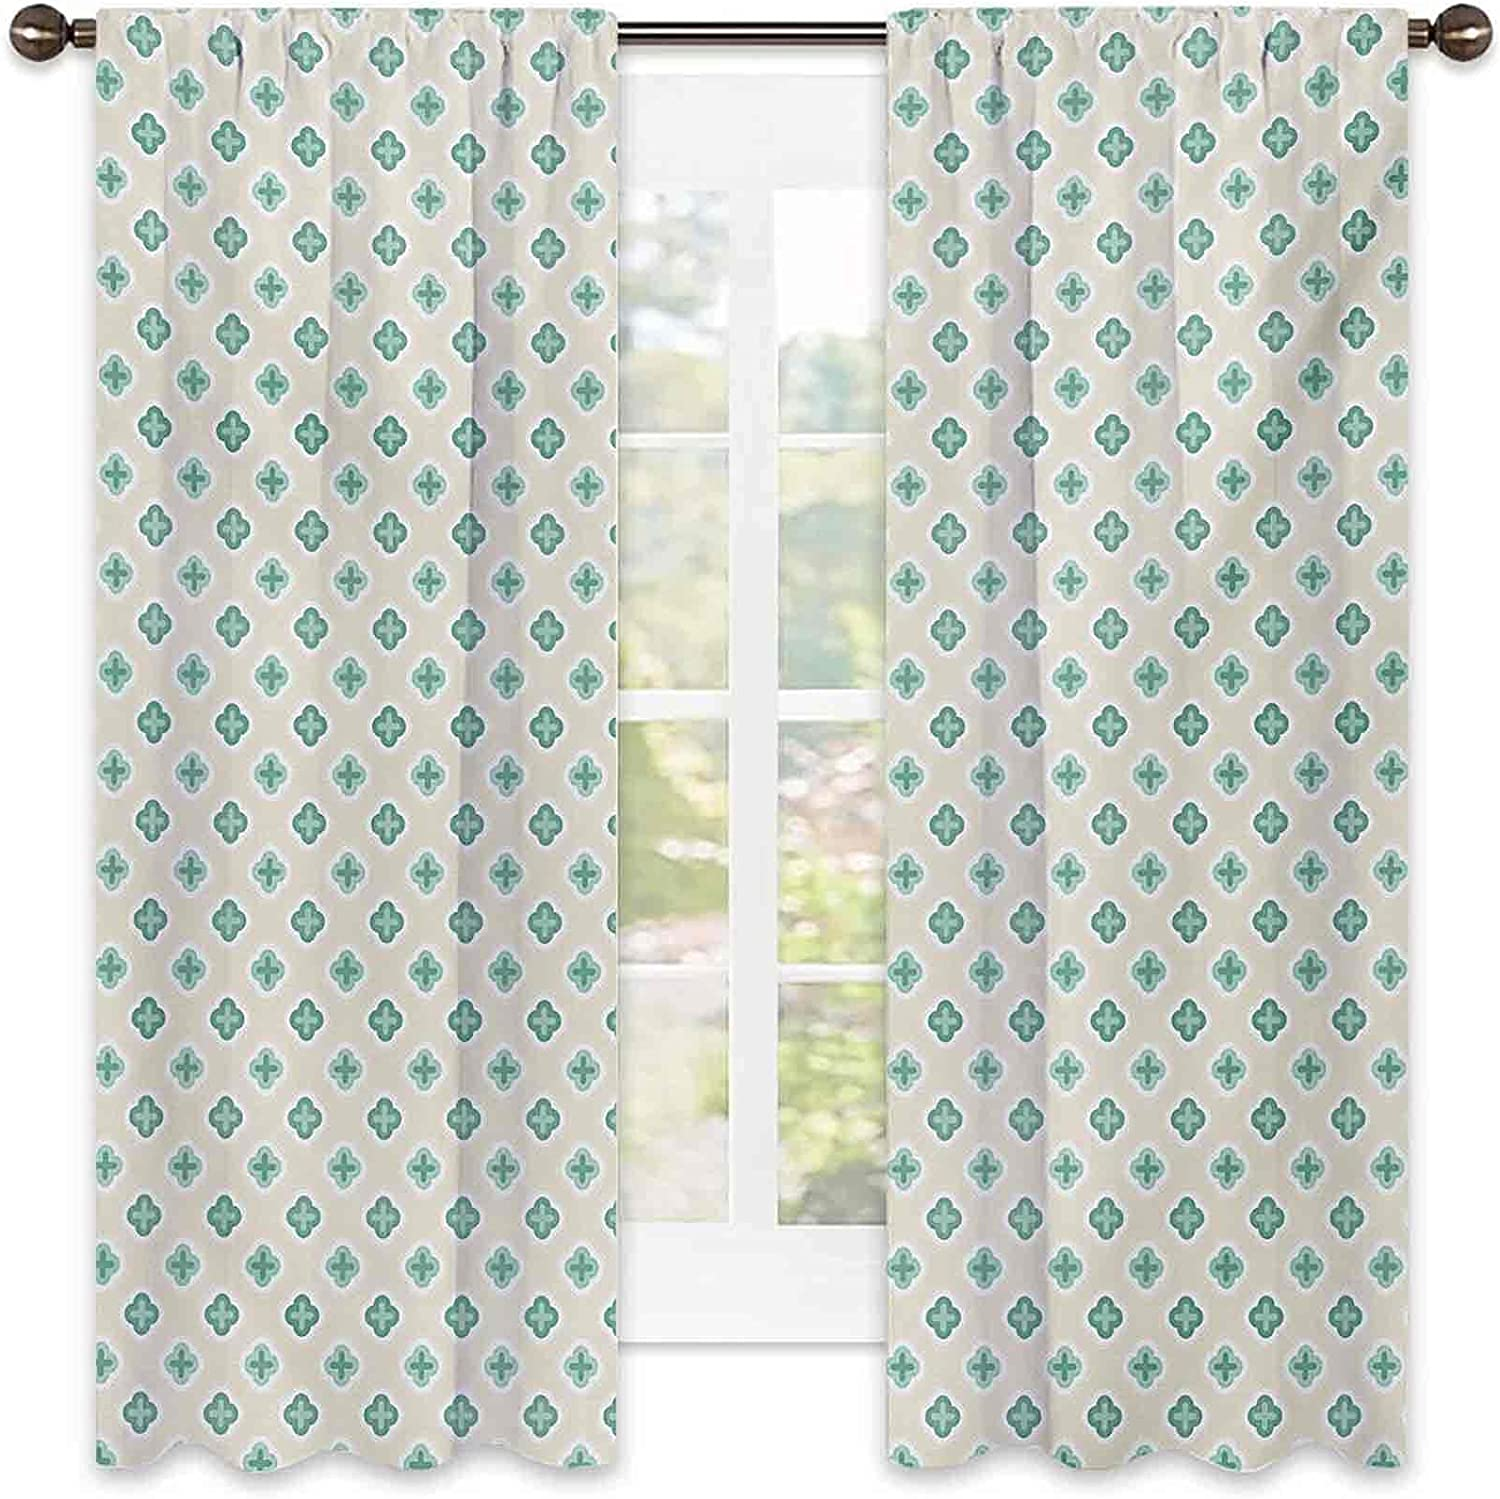 90% Blackout Turquoise Curtains Mail order Retro Abstract Ge Cross Pattern Ranking TOP13